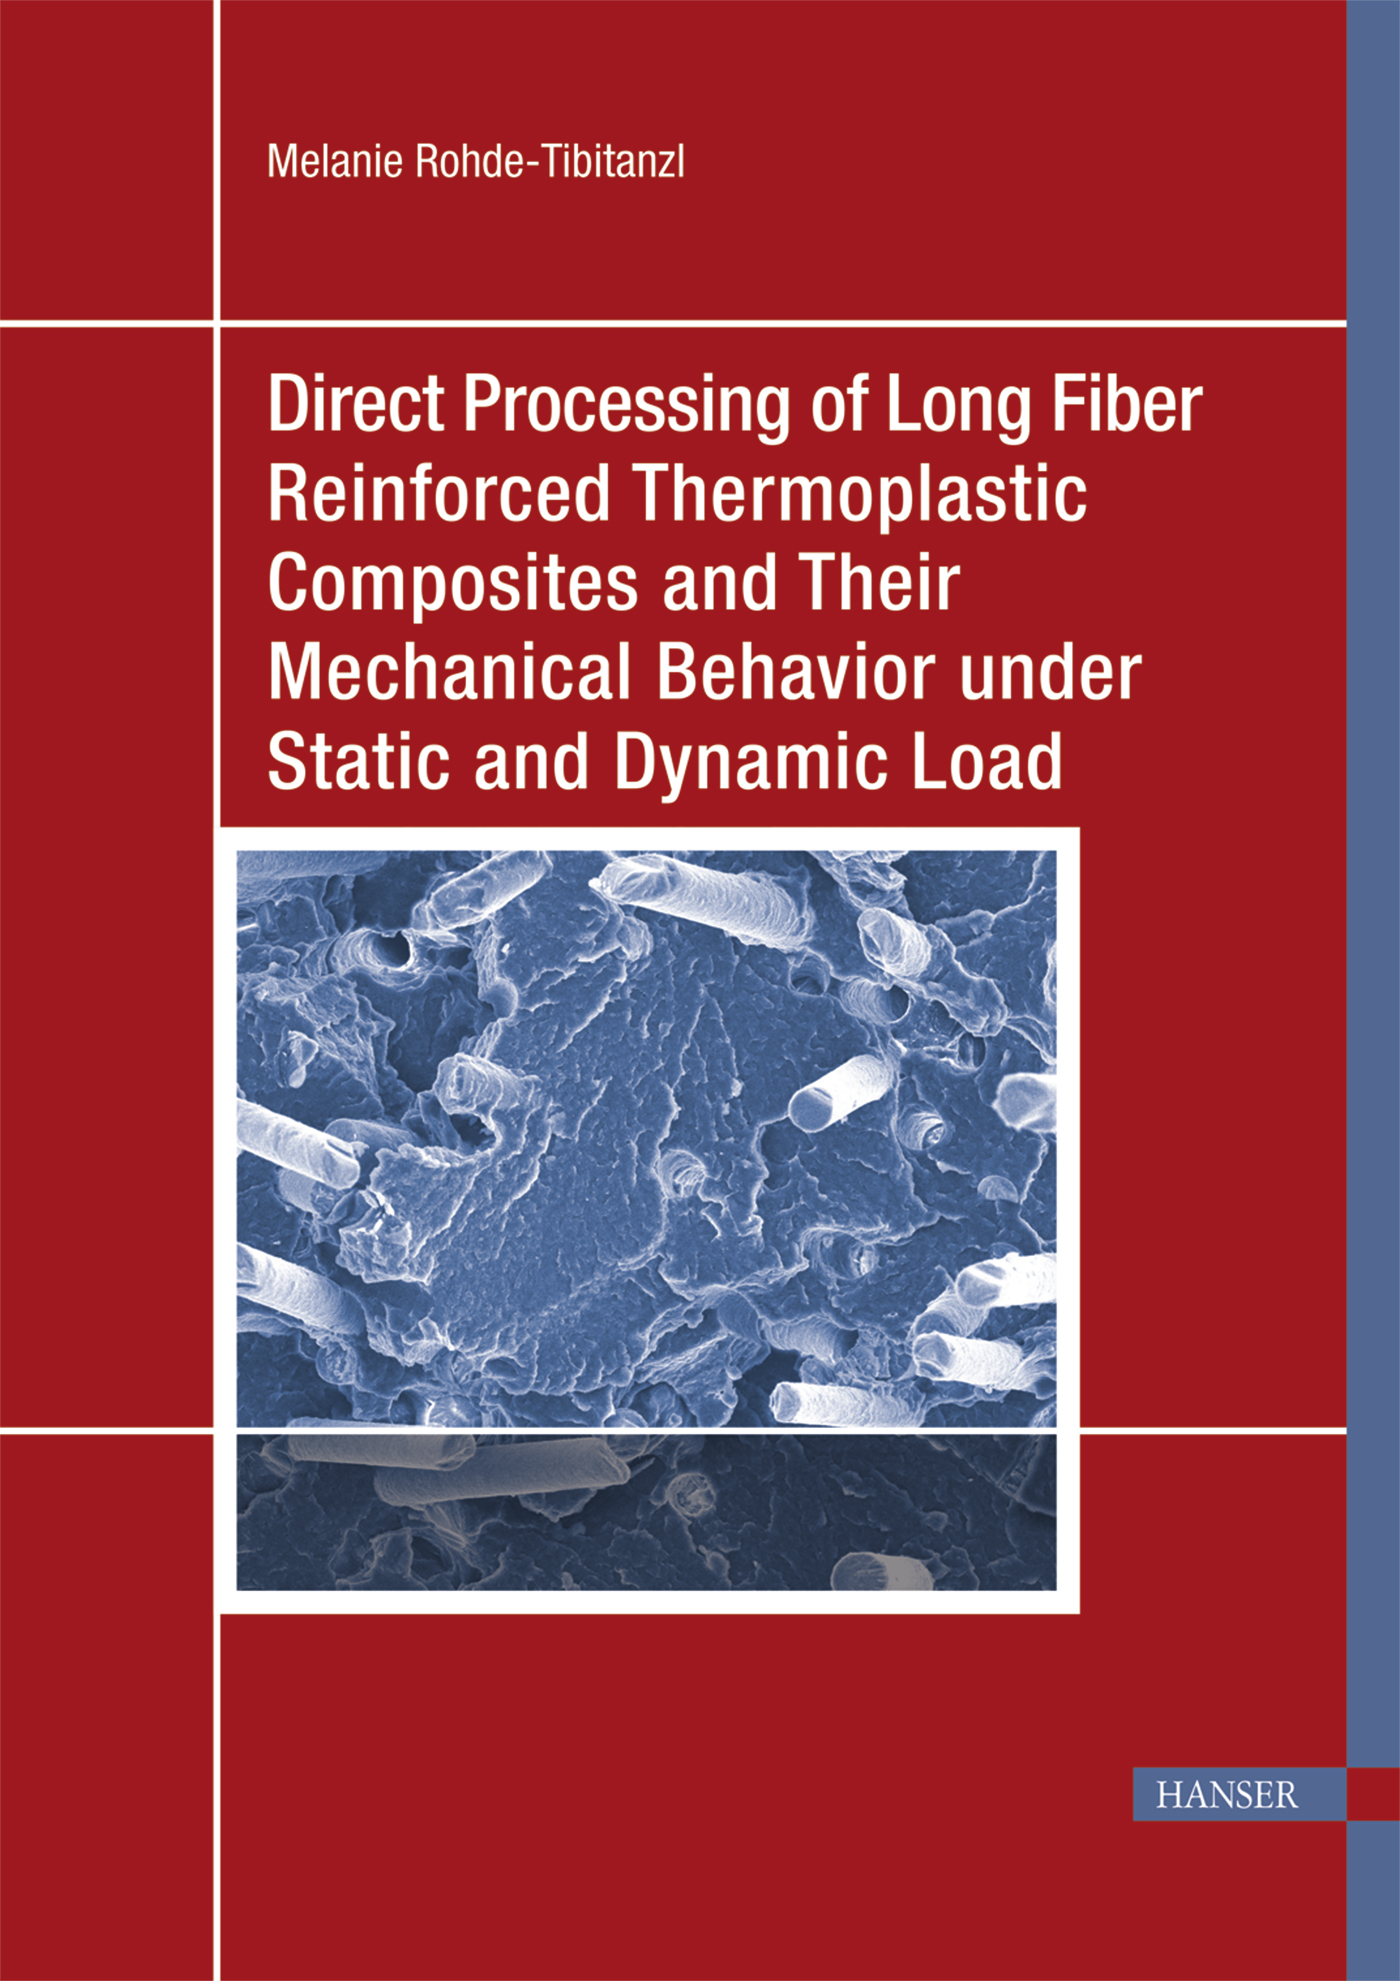 Rohde-Tibitanzl, Direct Processing of Long Fiber Reinforced Thermoplastic Composites and their Mechanical Behavior under Static and Dynamic Load, 978-1-56990-629-3